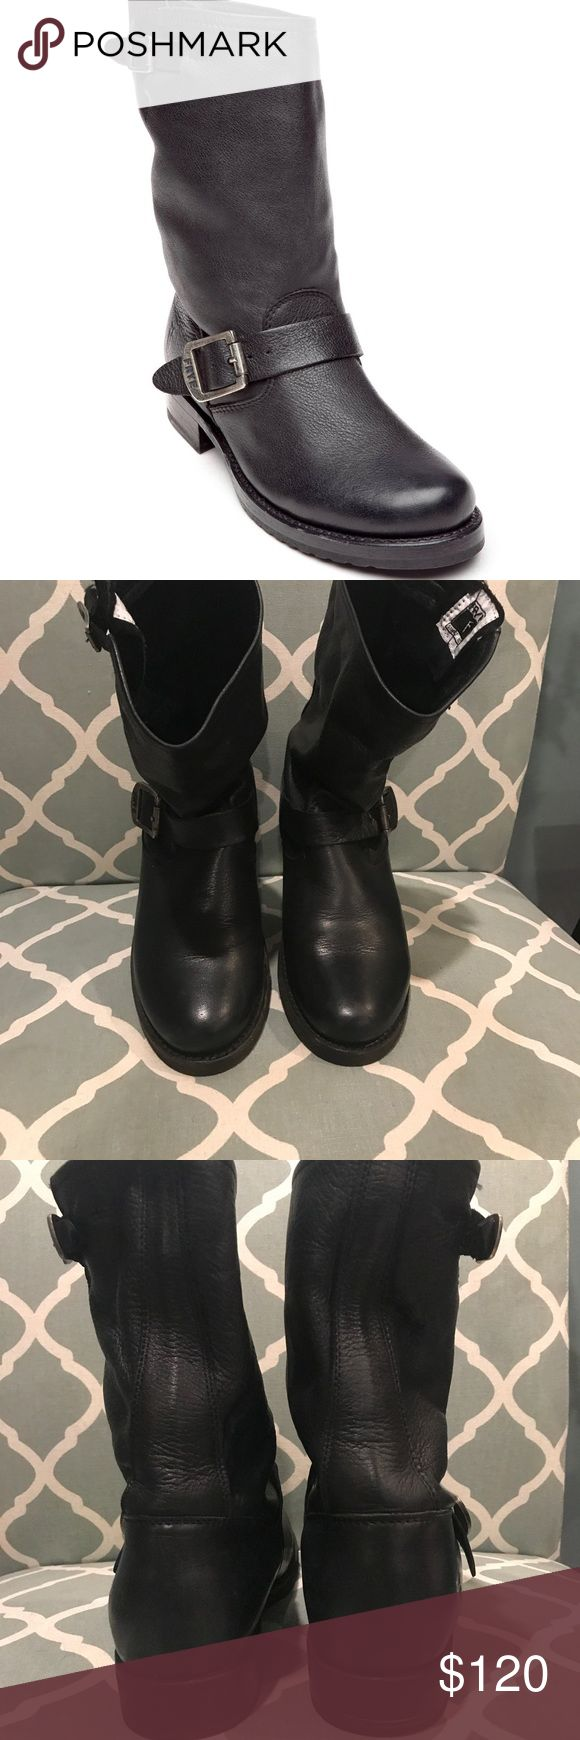 Frye Veronica short Frye Veronica boots. Size 8. Worn a few times great condition Frye Shoes Combat & Moto Boots